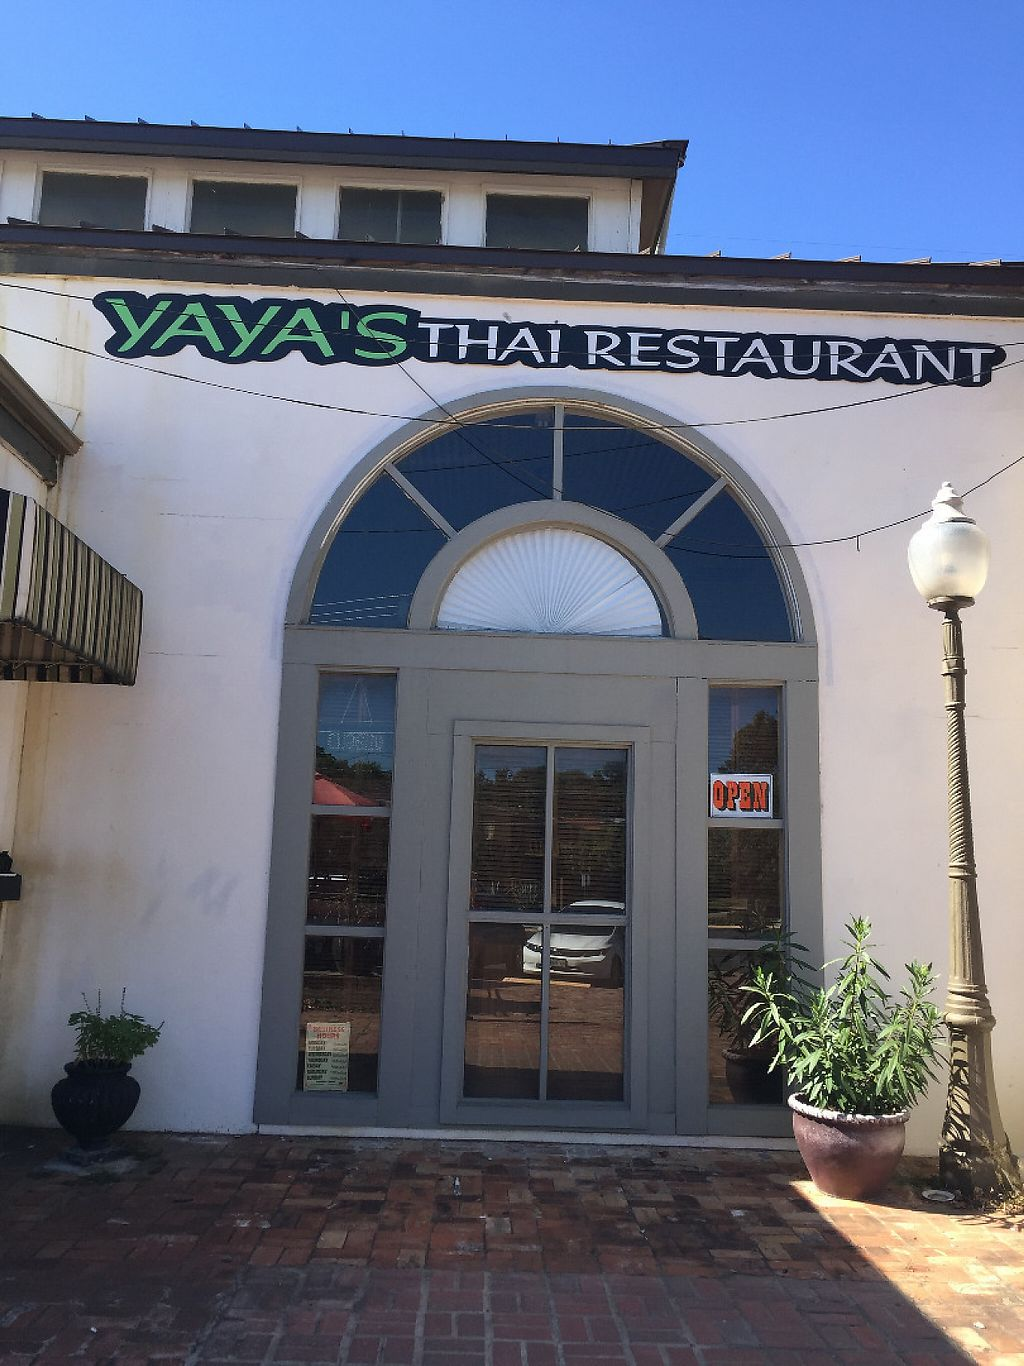 "Photo of Yaya's Thai Restaurant  by <a href=""/members/profile/Suz"">Suz</a> <br/>Original location <br/> November 8, 2016  - <a href='/contact/abuse/image/48230/187349'>Report</a>"